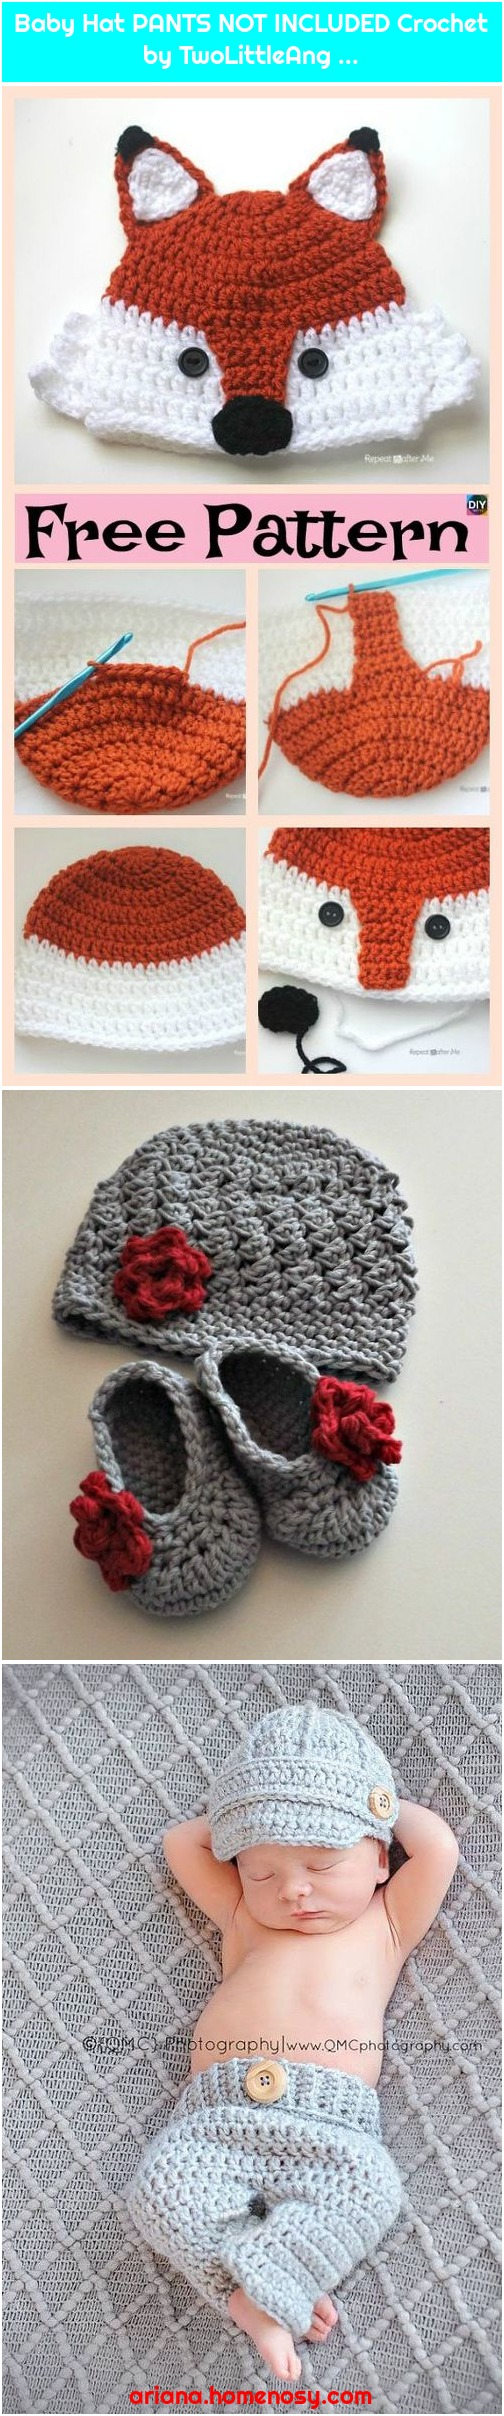 Baby Hat PANTS NOT INCLUDED Crochet by TwoLittleAng ...